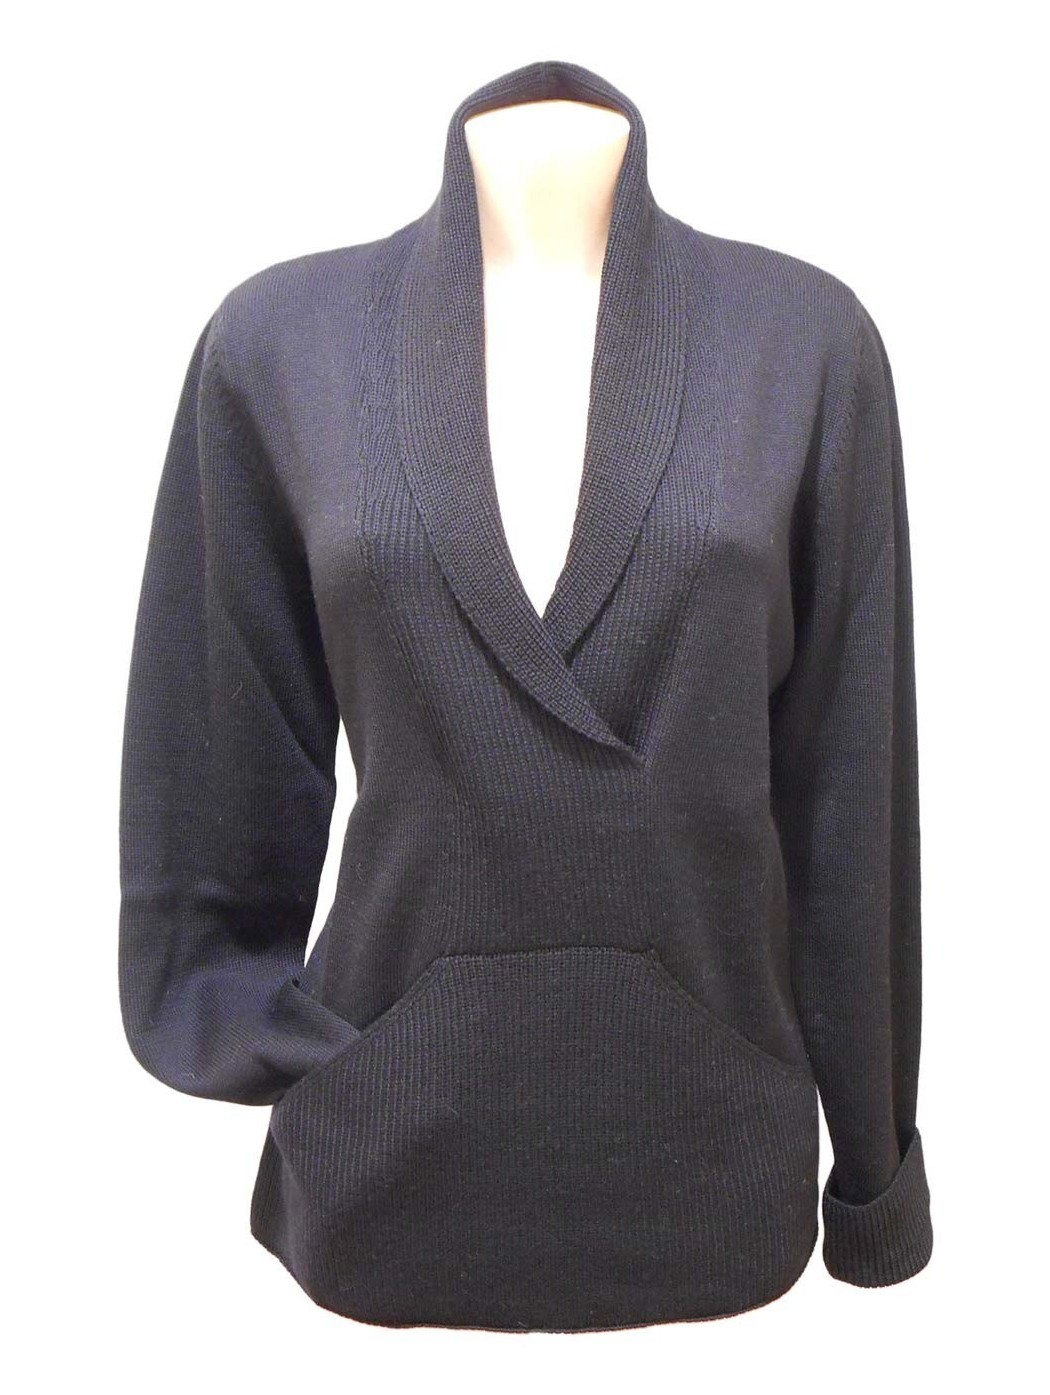 Black sweater with pouch pocket